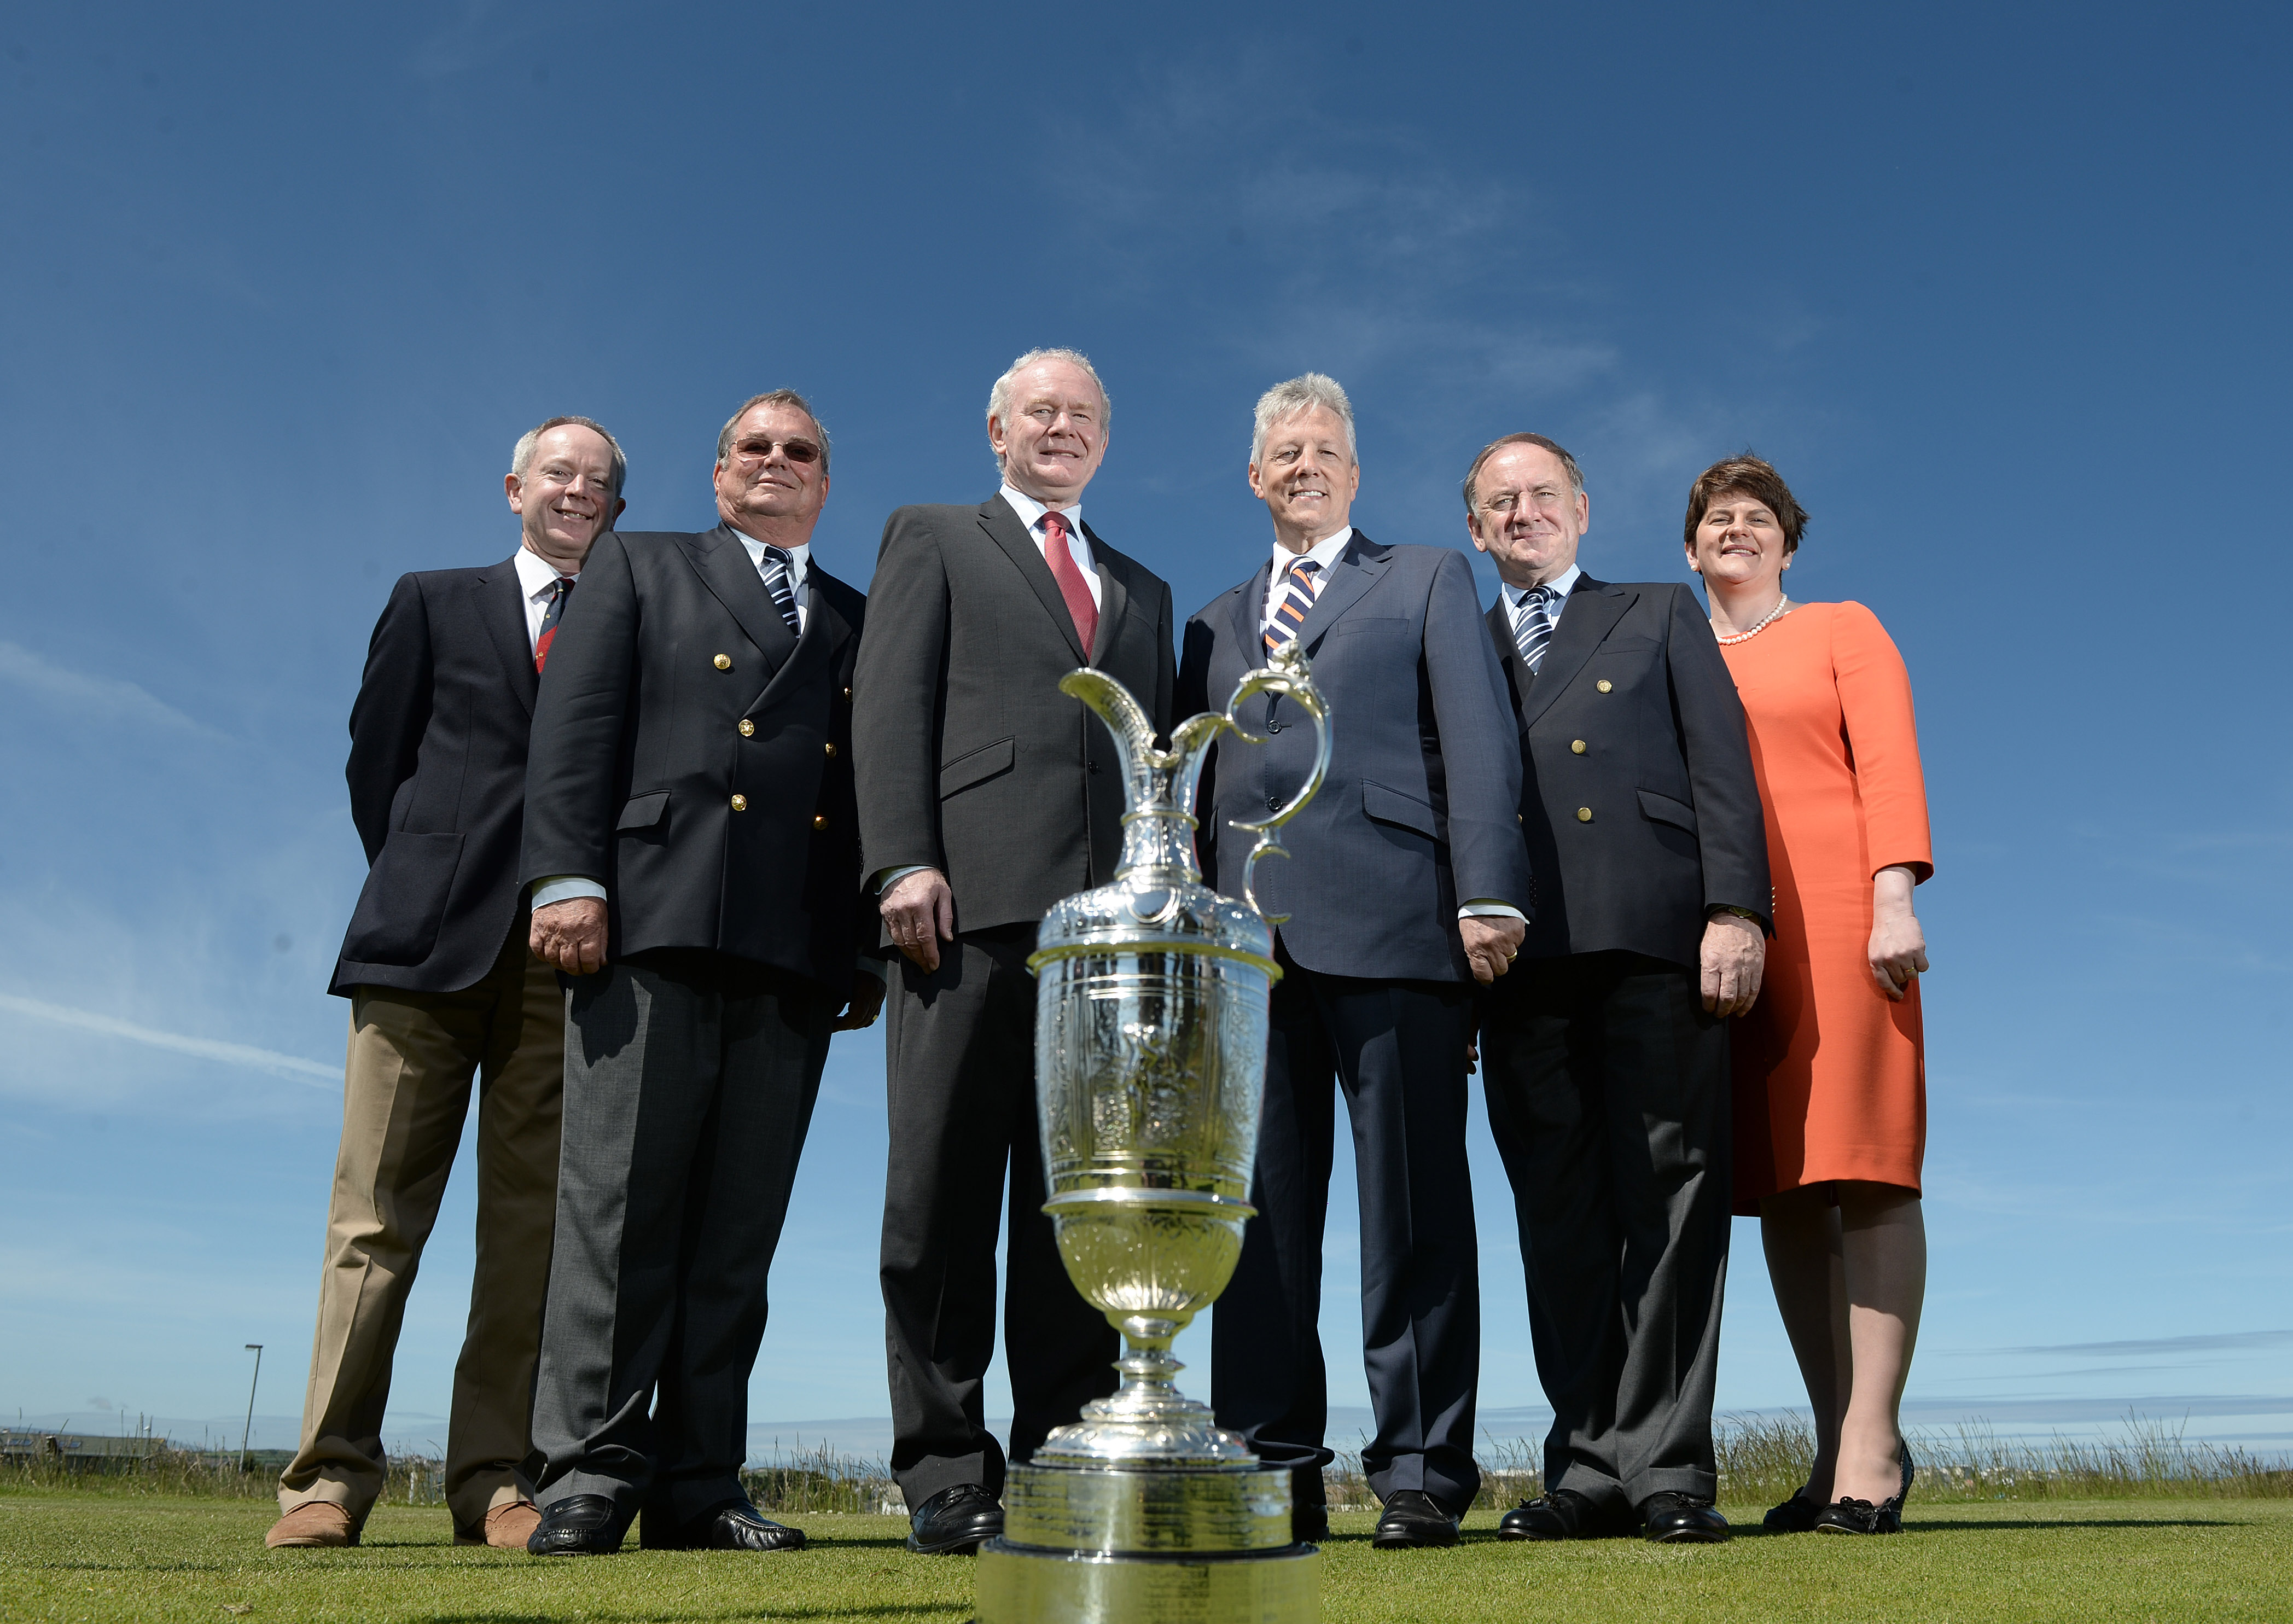 The Open Championship Announcement